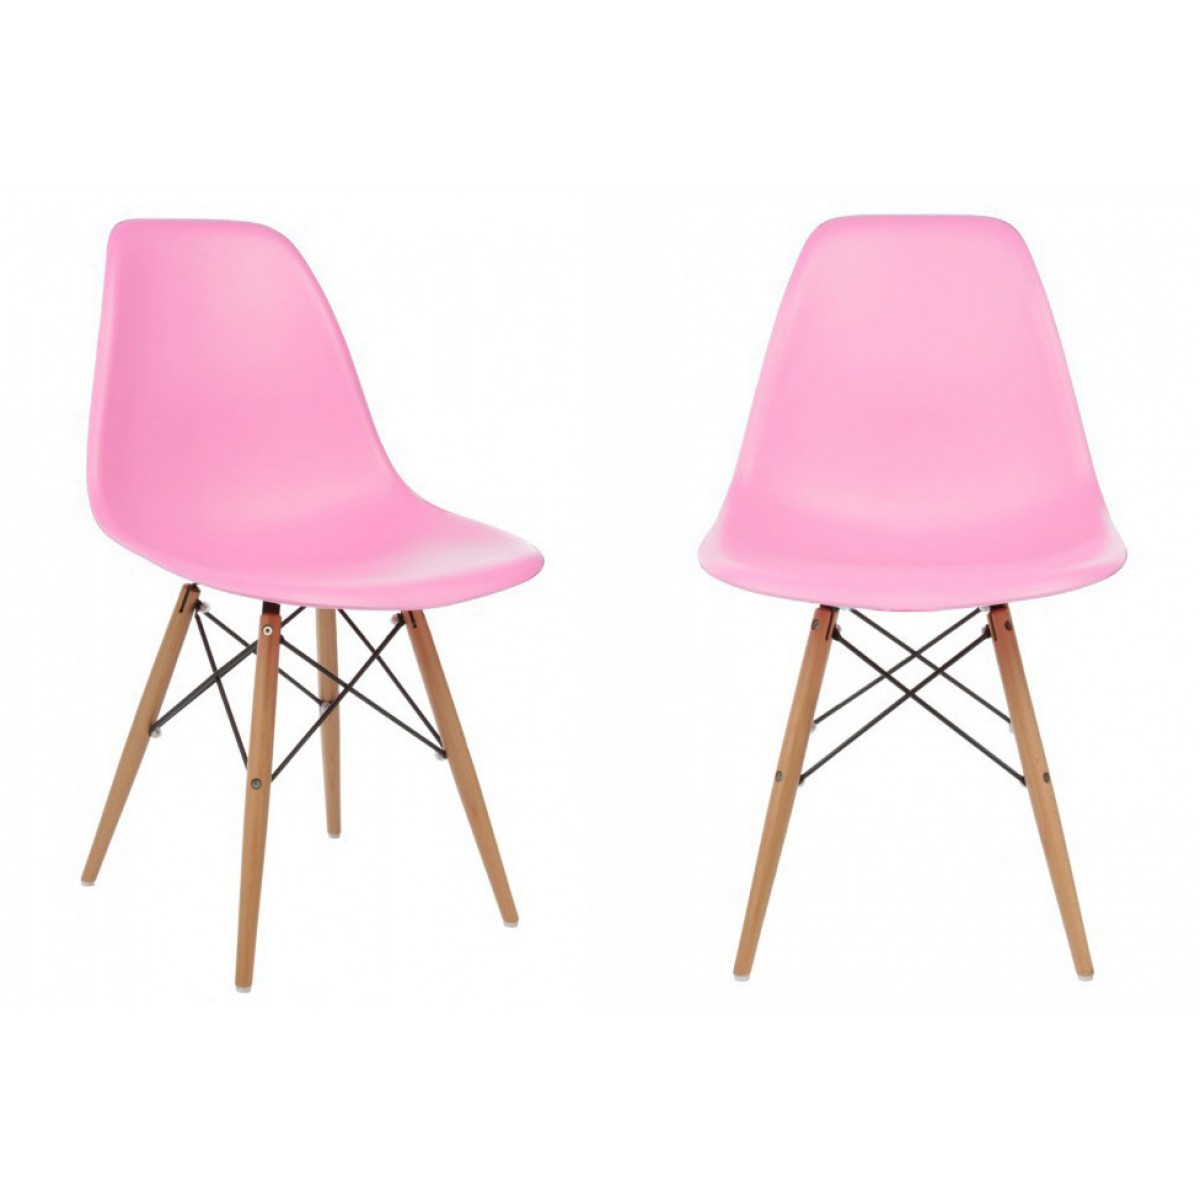 Set Of 2 DSW Molded Pink Plastic Dining Shell Chair With Wood Eiffel Legs